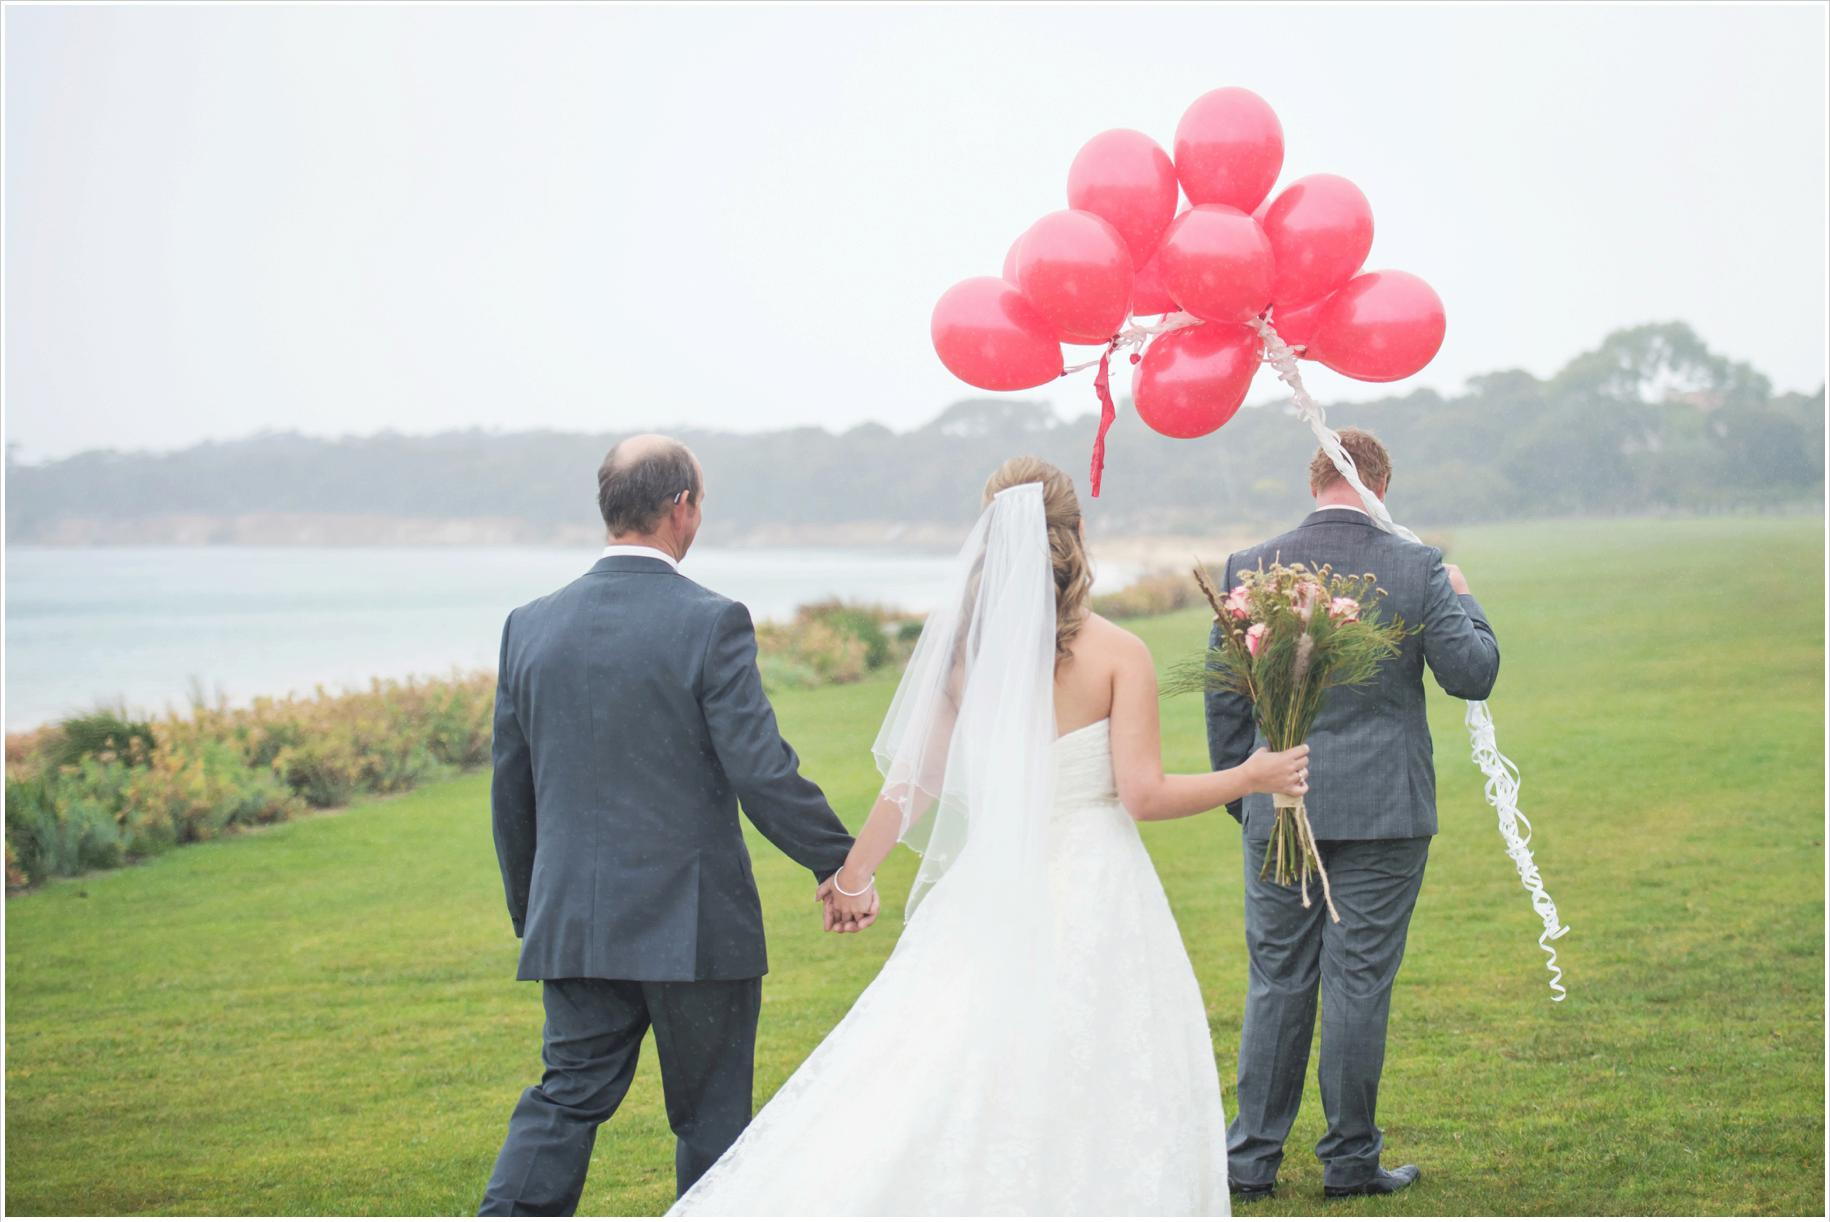 first look in the rain with red balloons